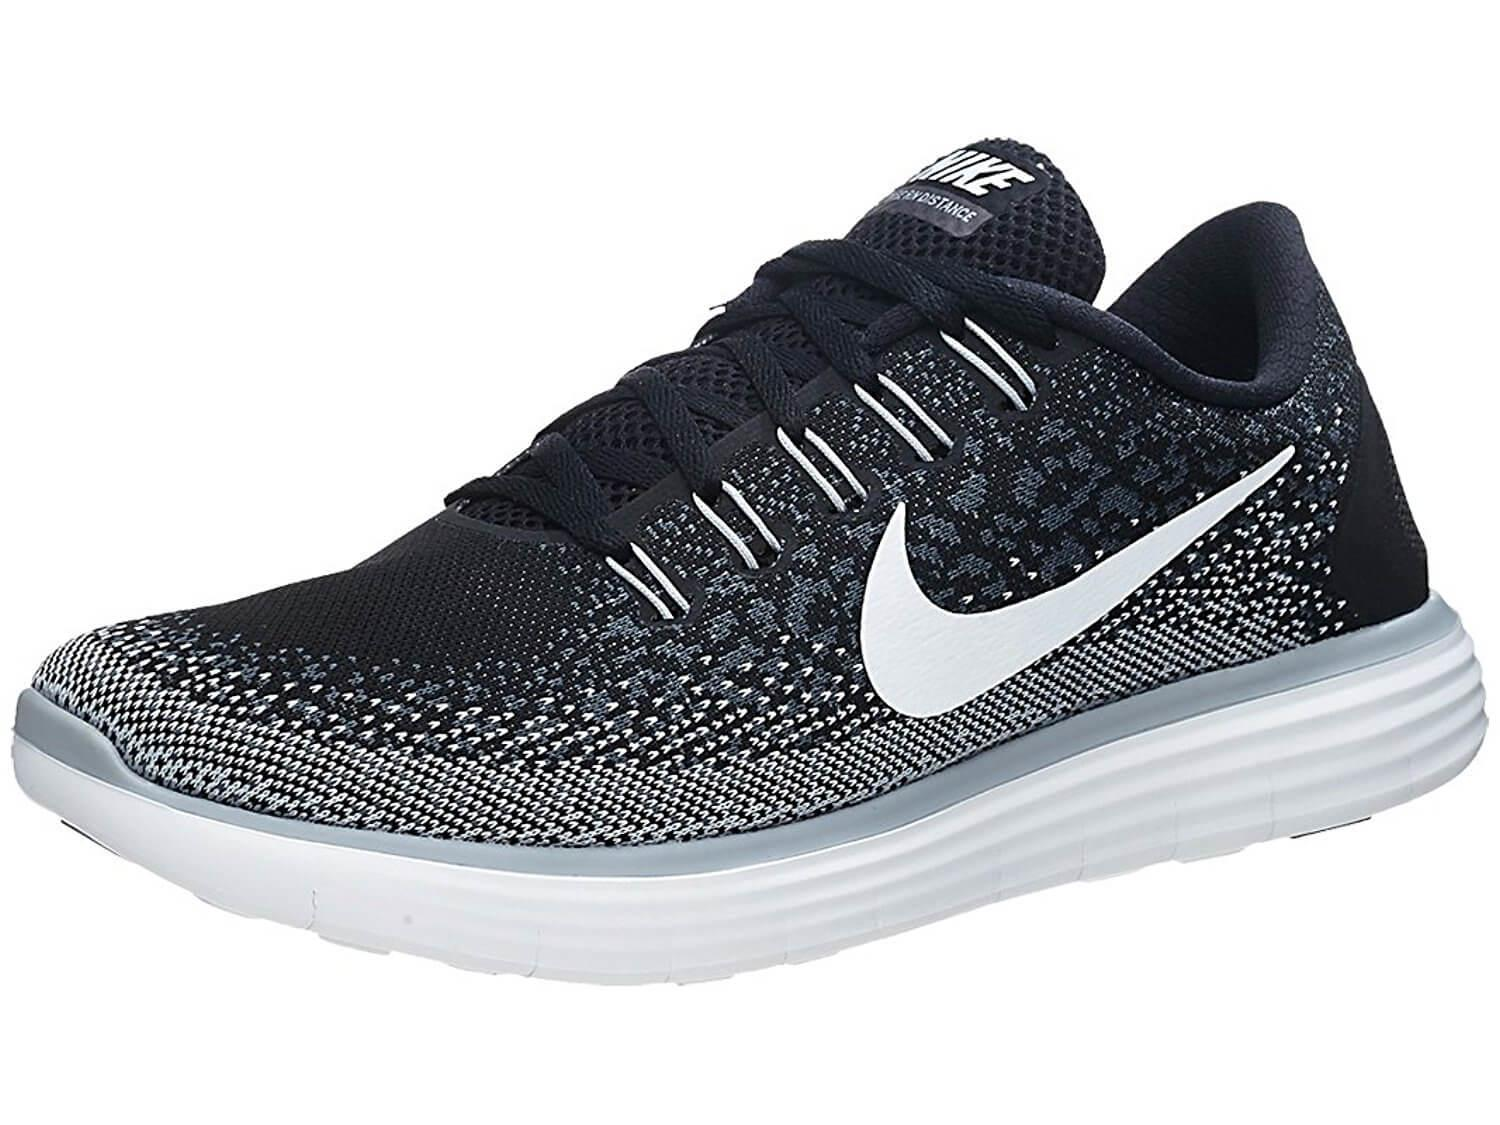 Nike Free   Flyknit Running Shoe Review